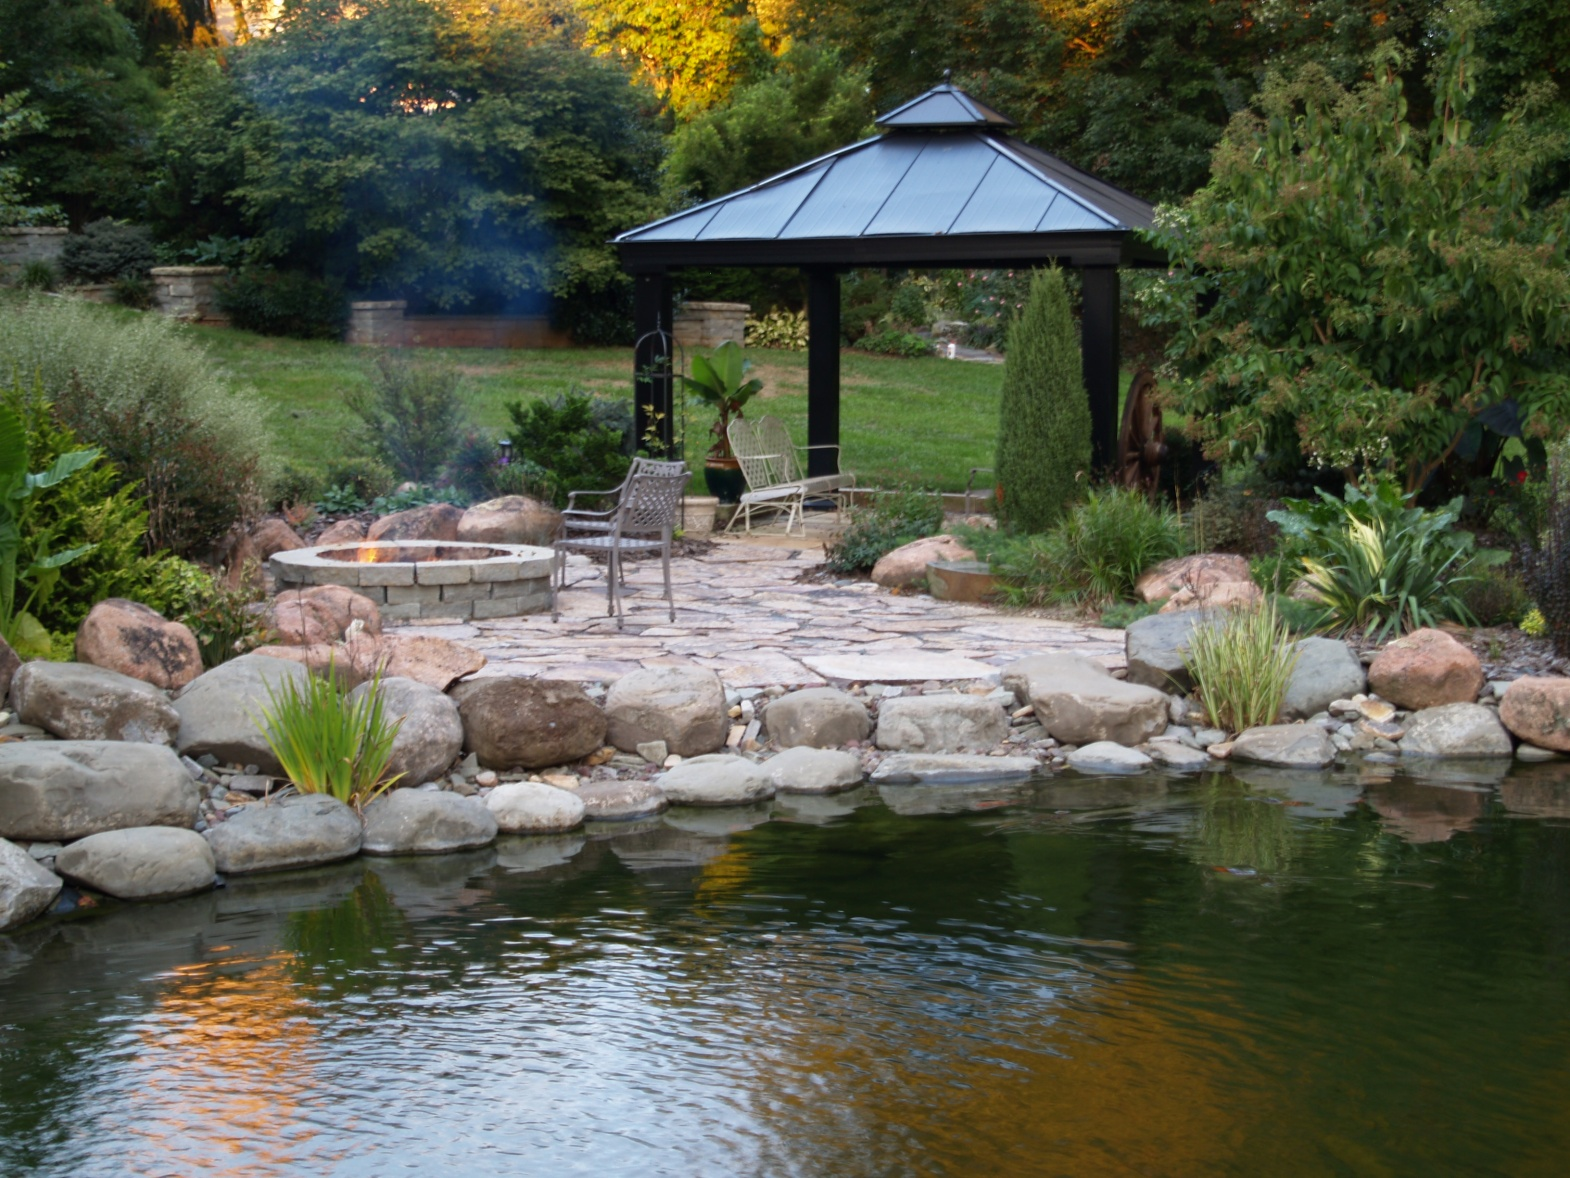 The swimming pond ramblin 39 through dave 39 s garden for Garden pool designs ideas